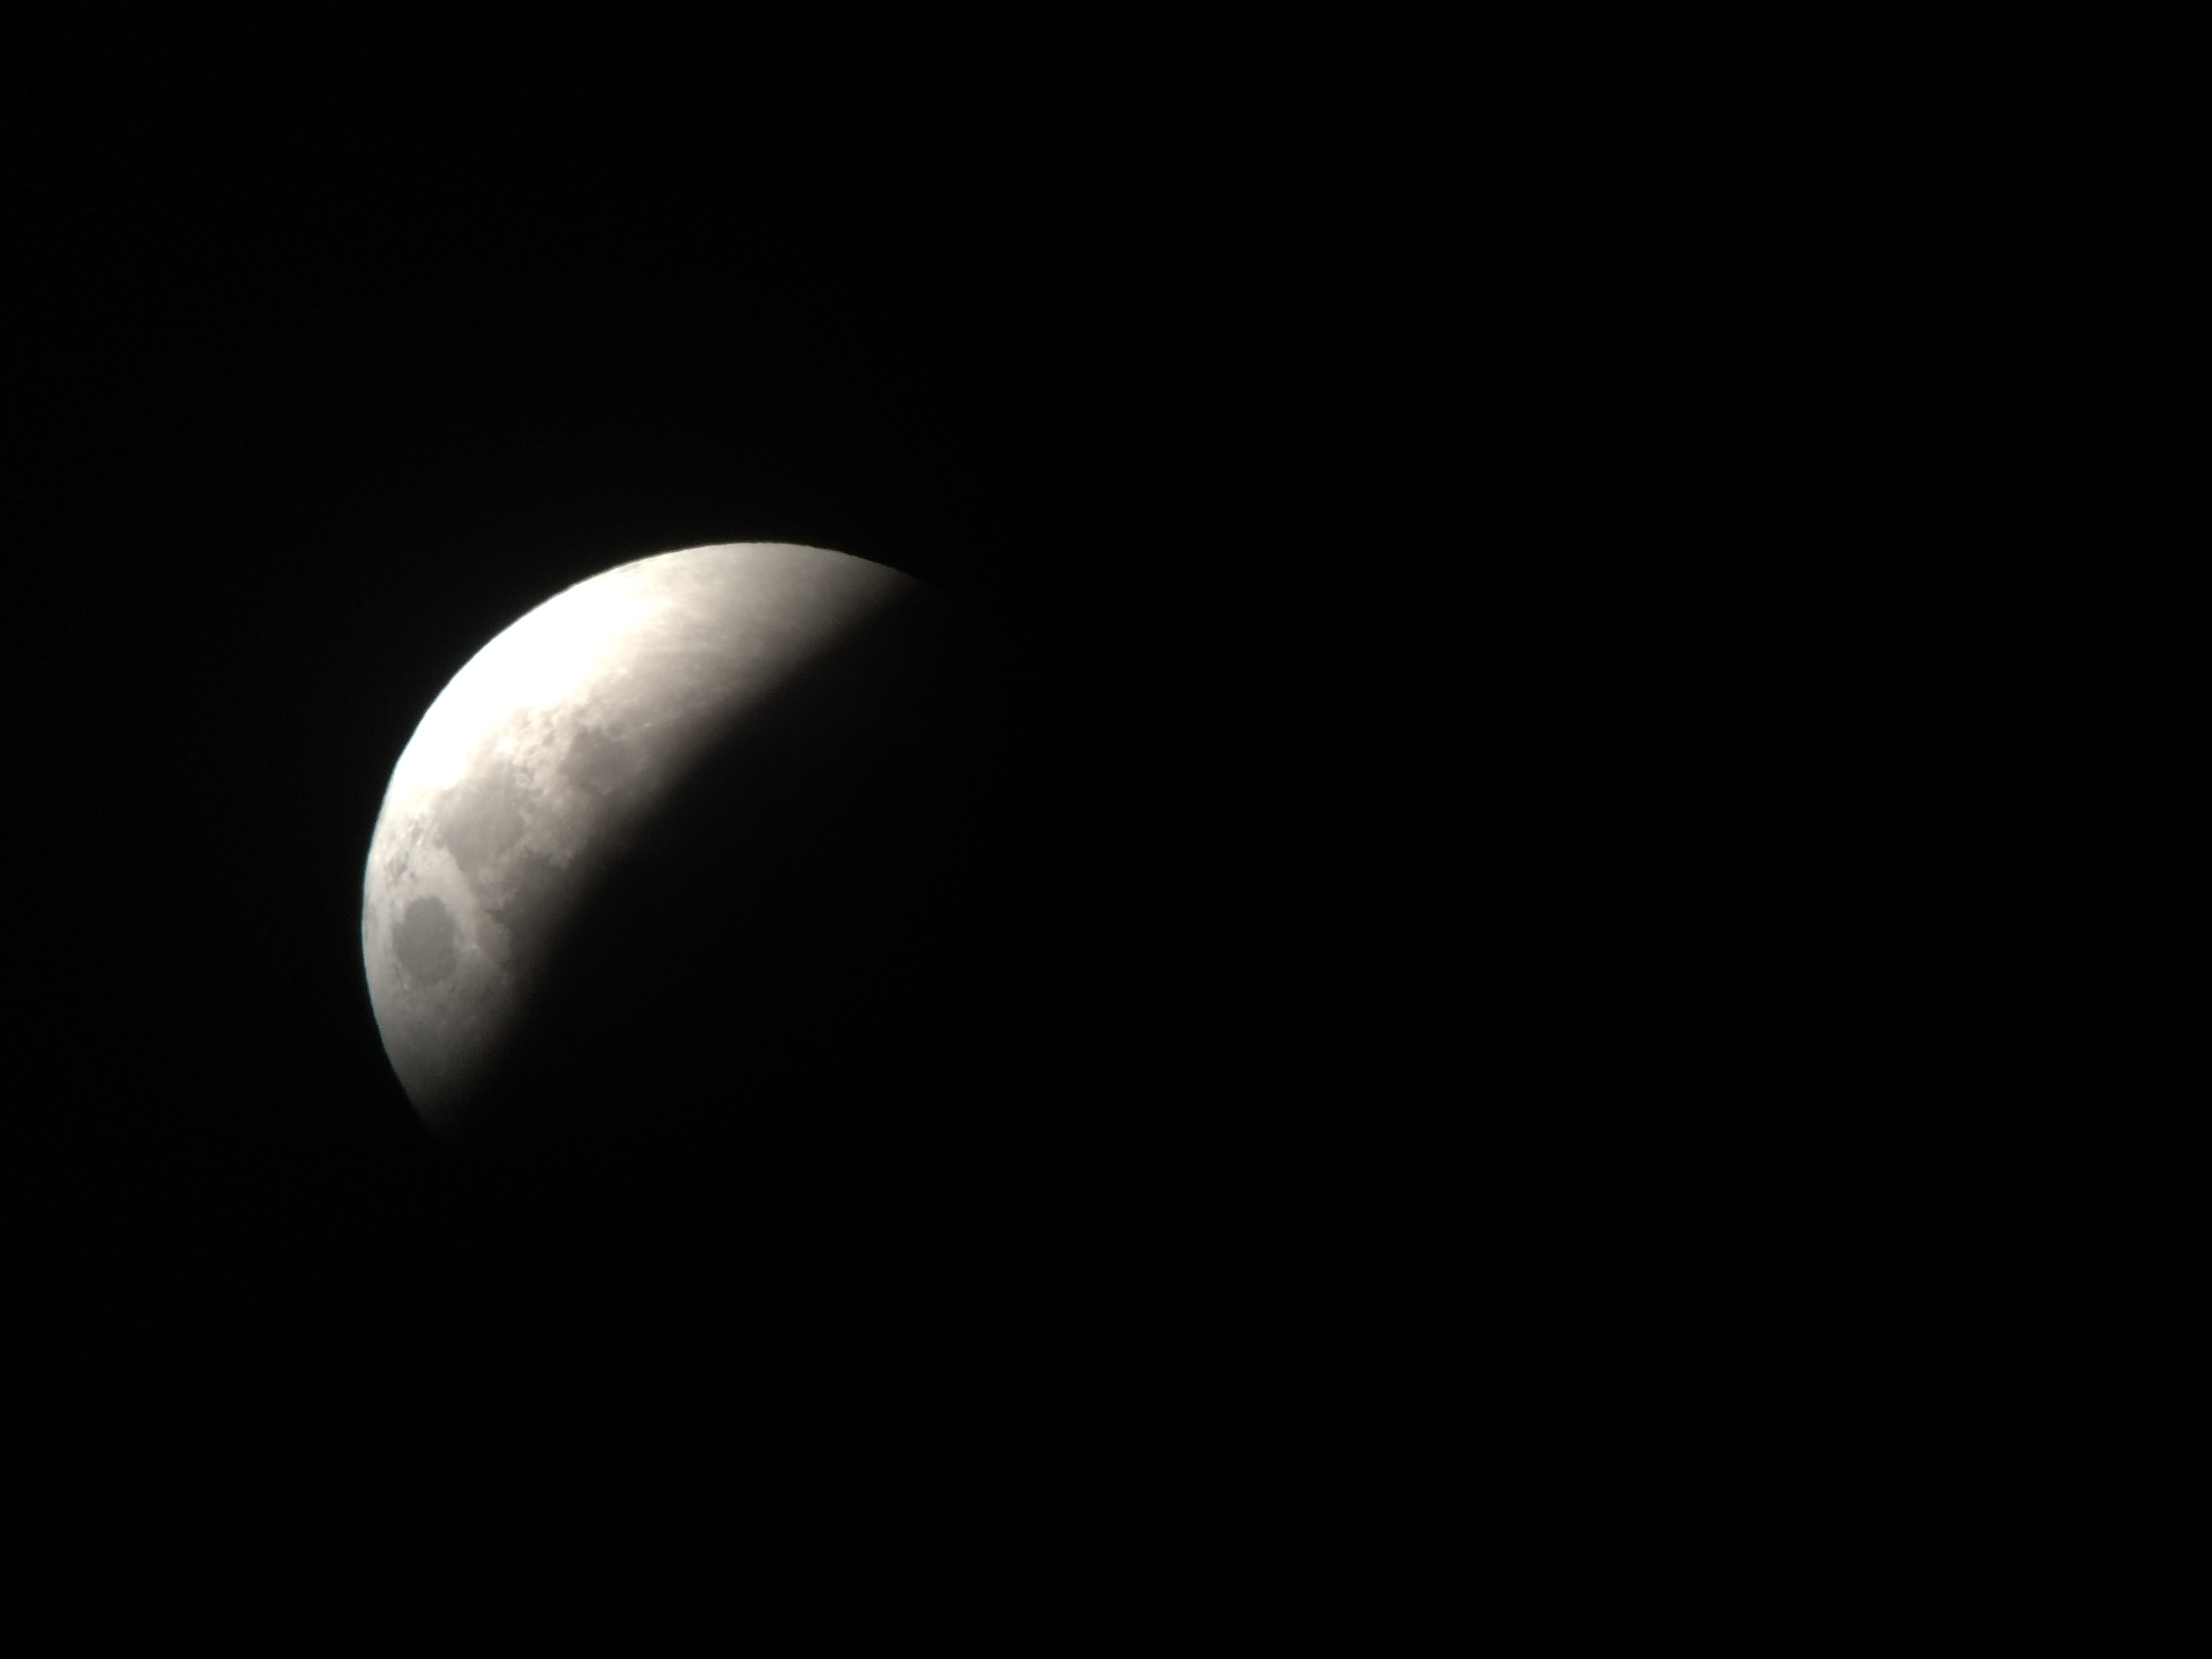 Supermoon Lunar Eclipse from Boston